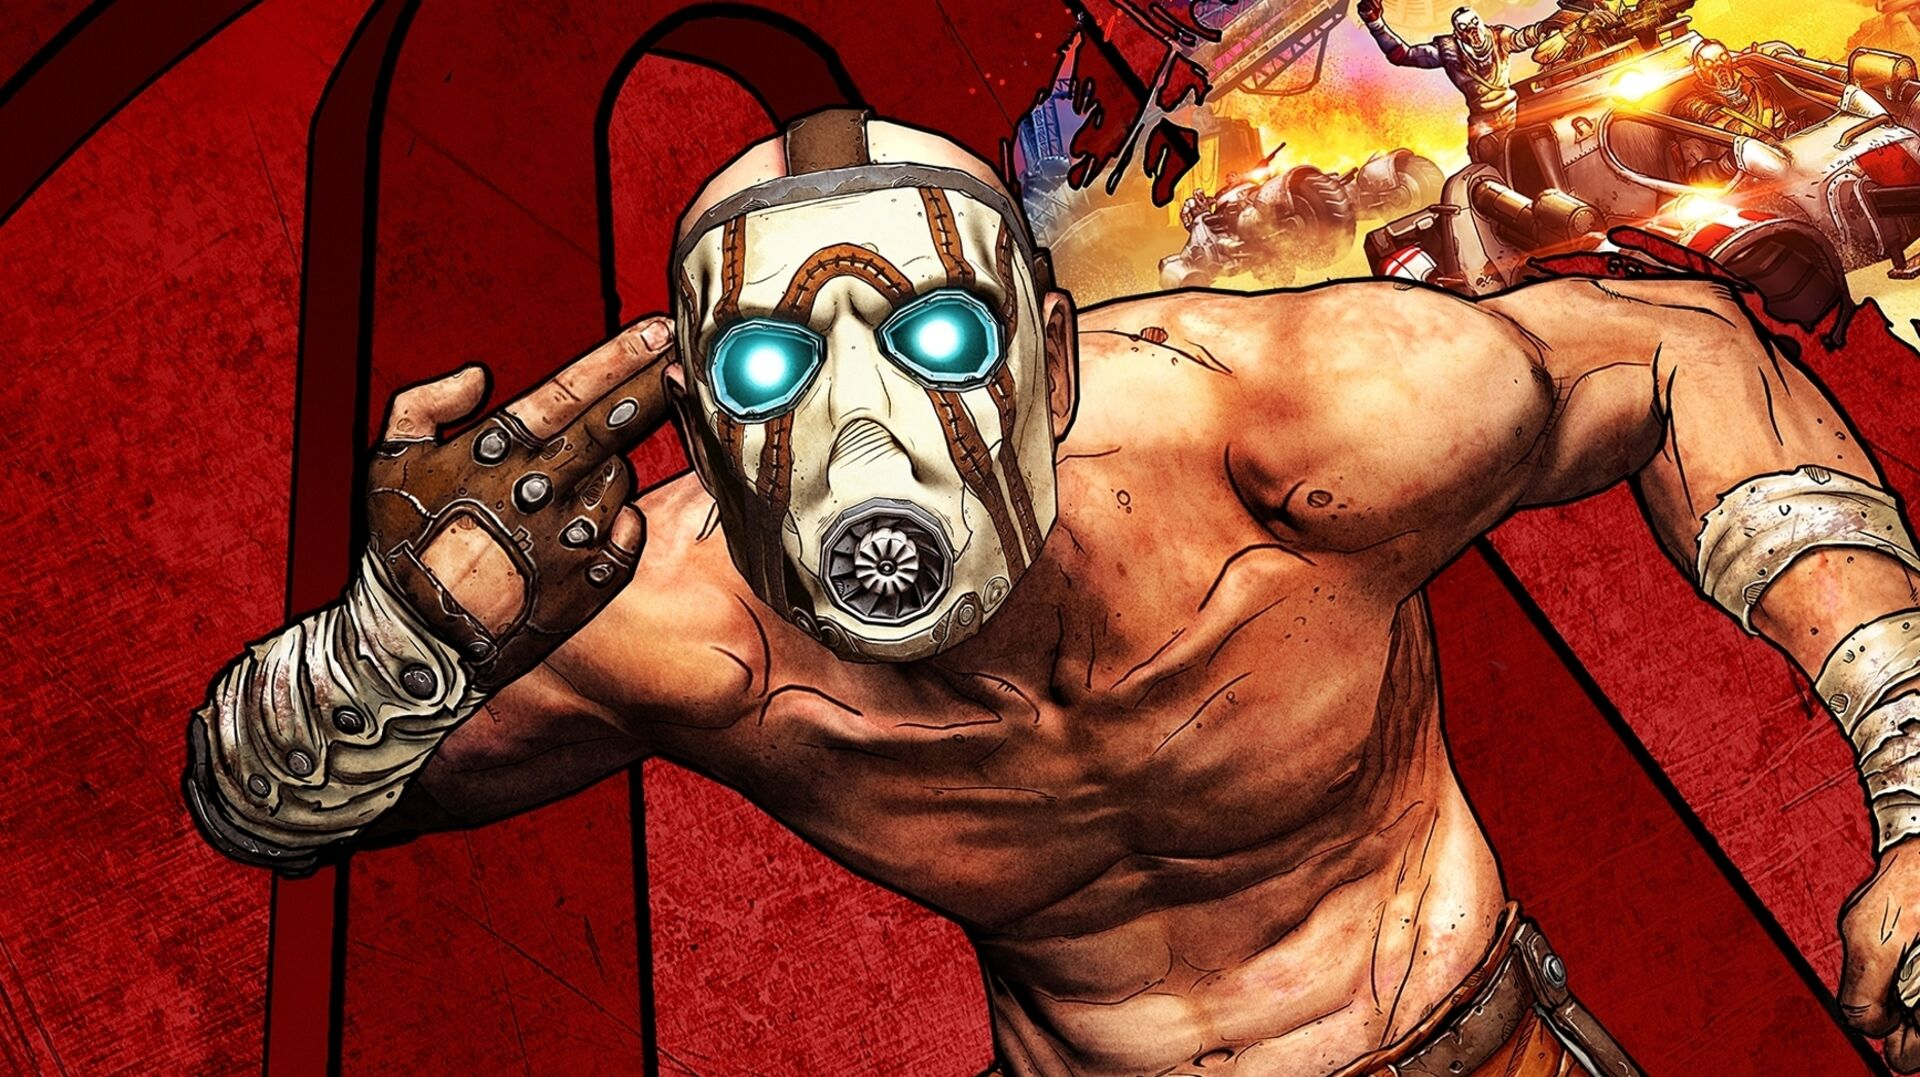 Borderlands GOTY improves on the original, but consoles need